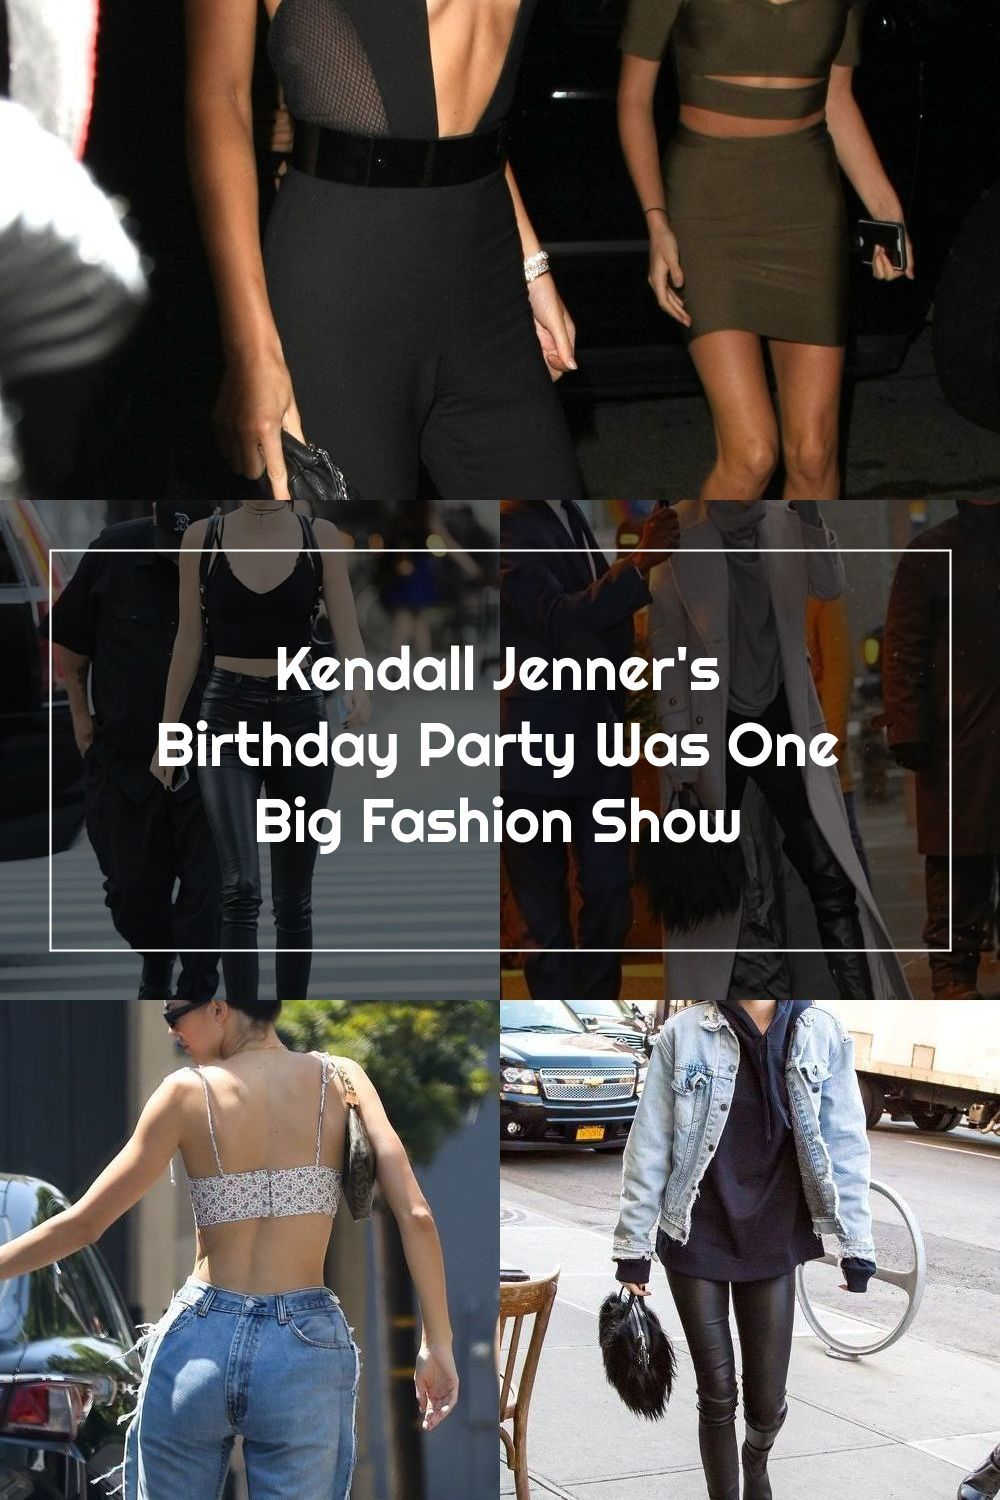 Kendall Jenner's Birthday Party Was One Big Fashion Show